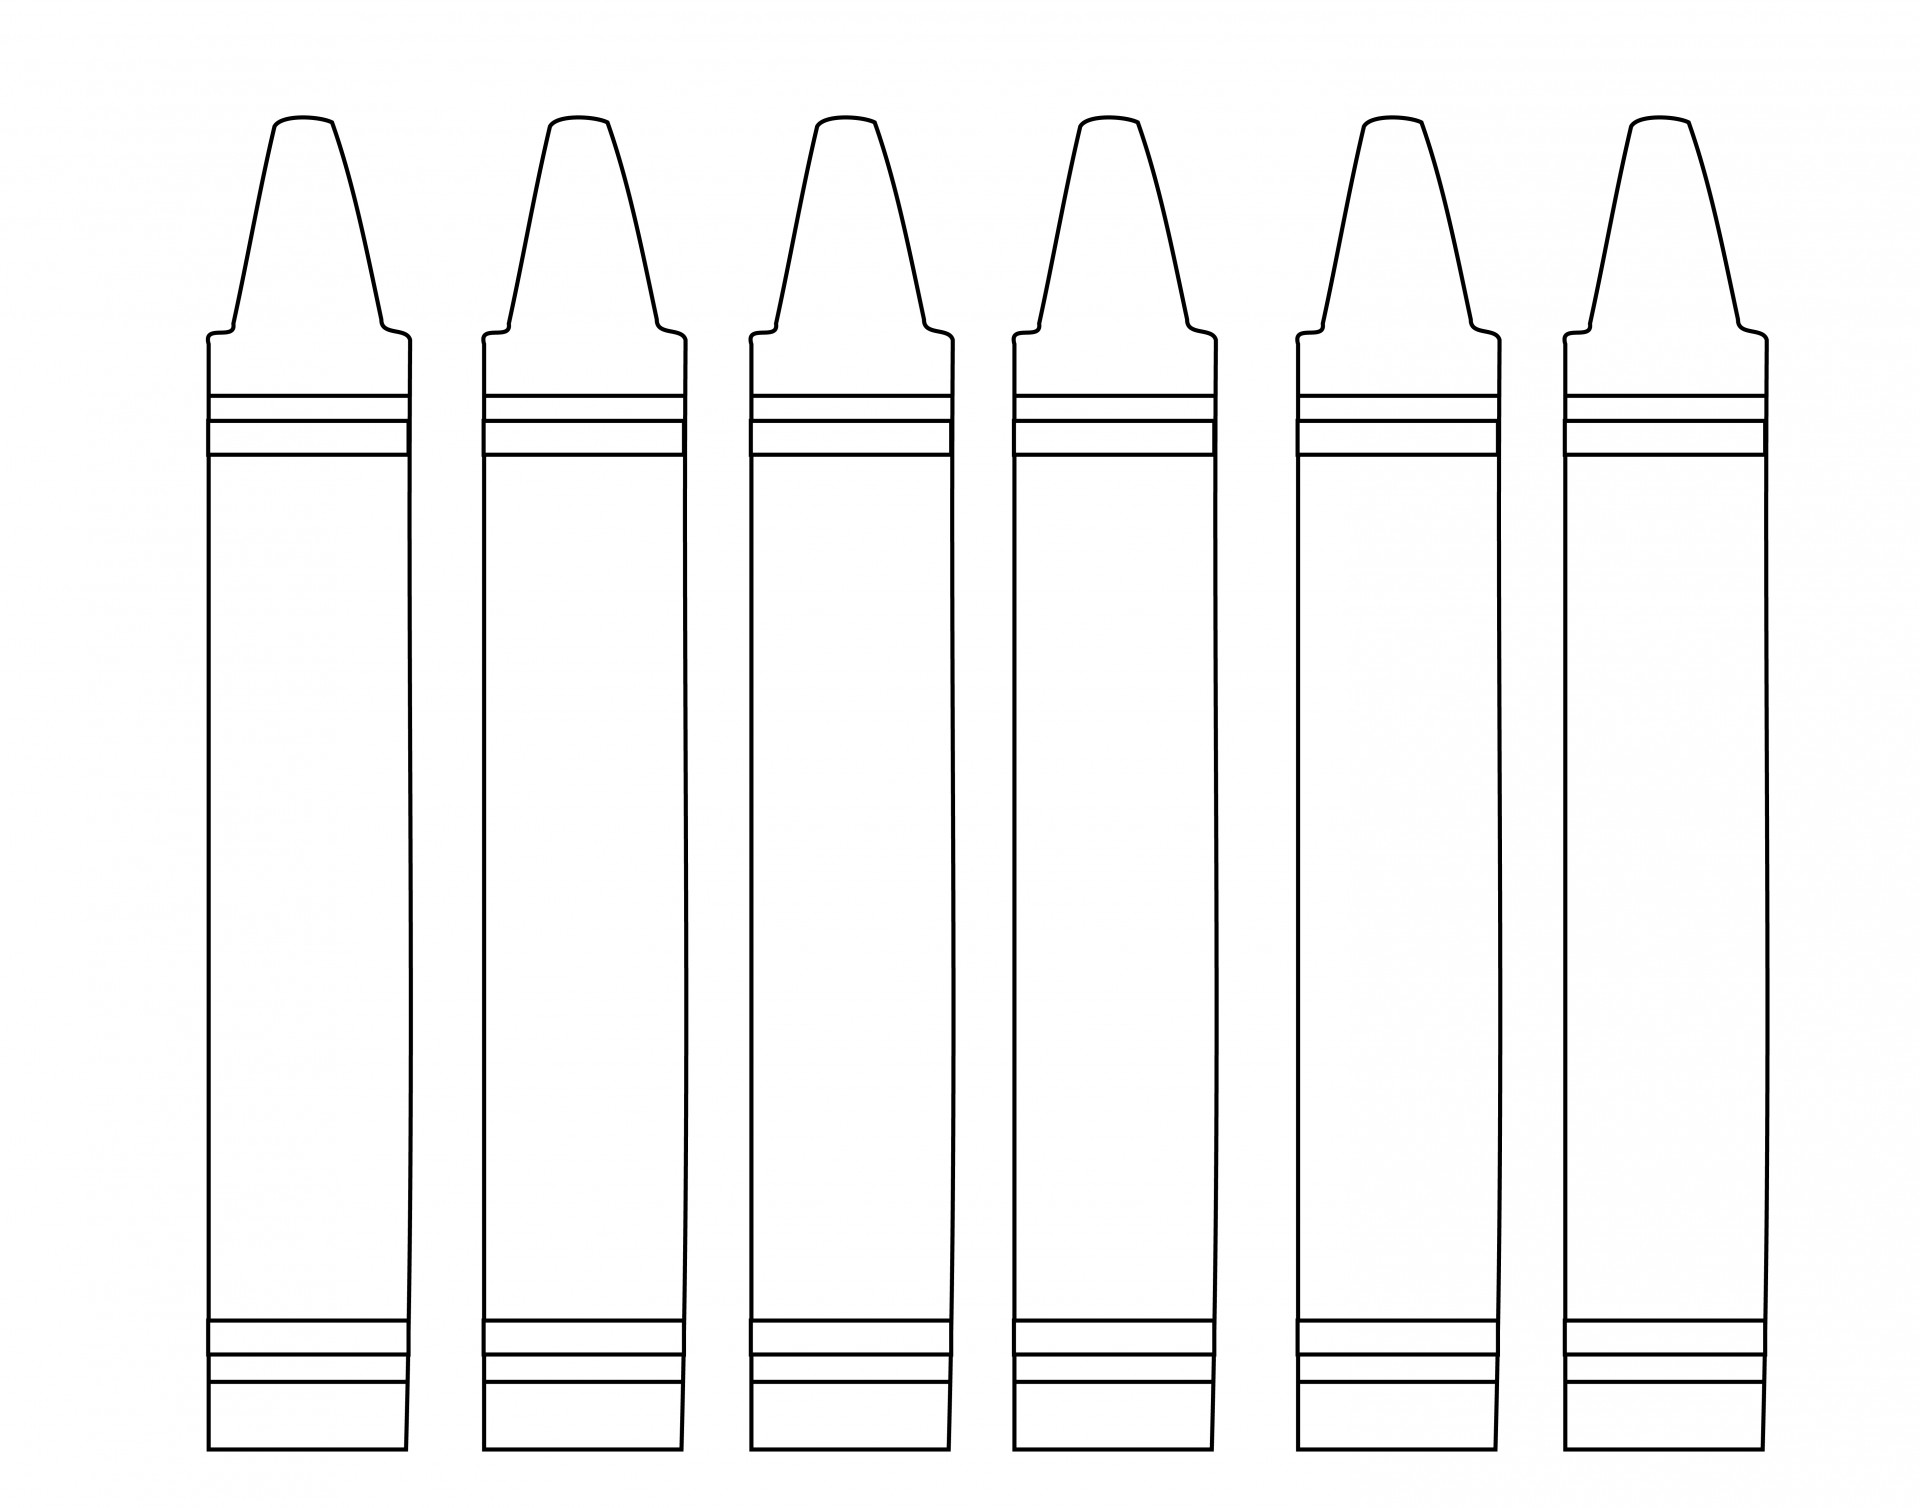 Crayon clipart outline Crayons Crayons Outline Outline Photo